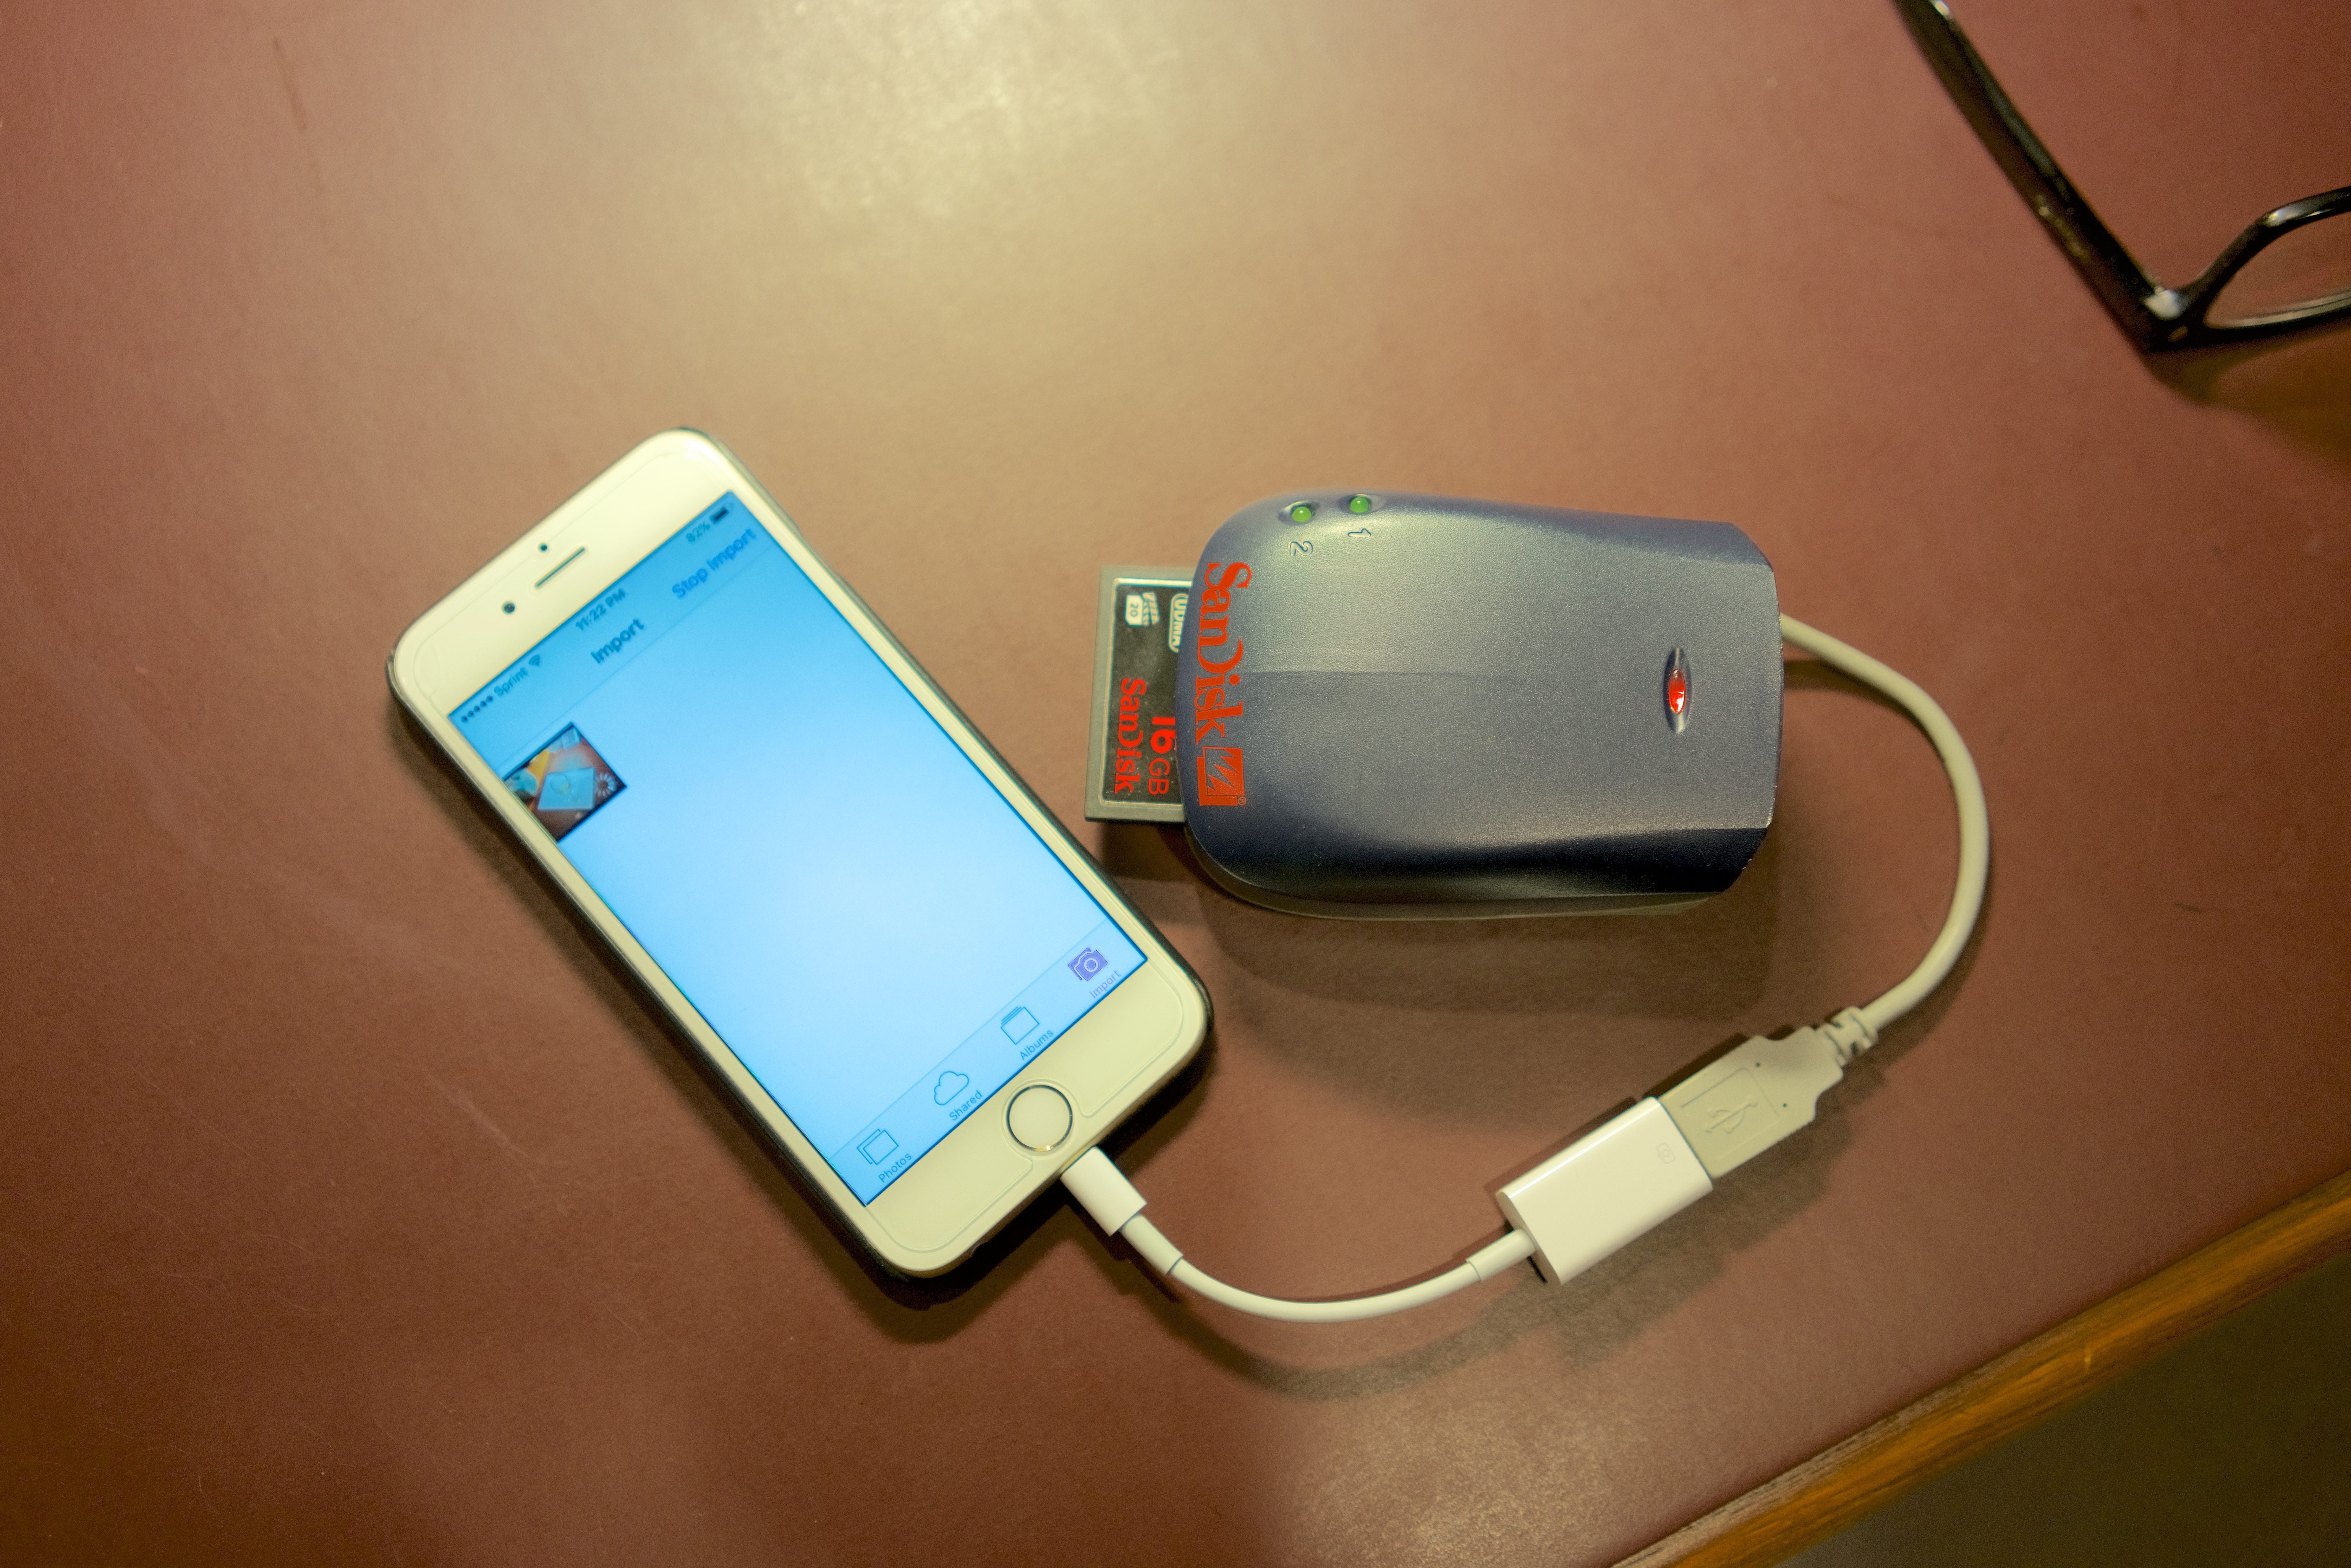 View original size & Lightning to usb adaptor. Will cf card reader work? iphone ios9.2 ...